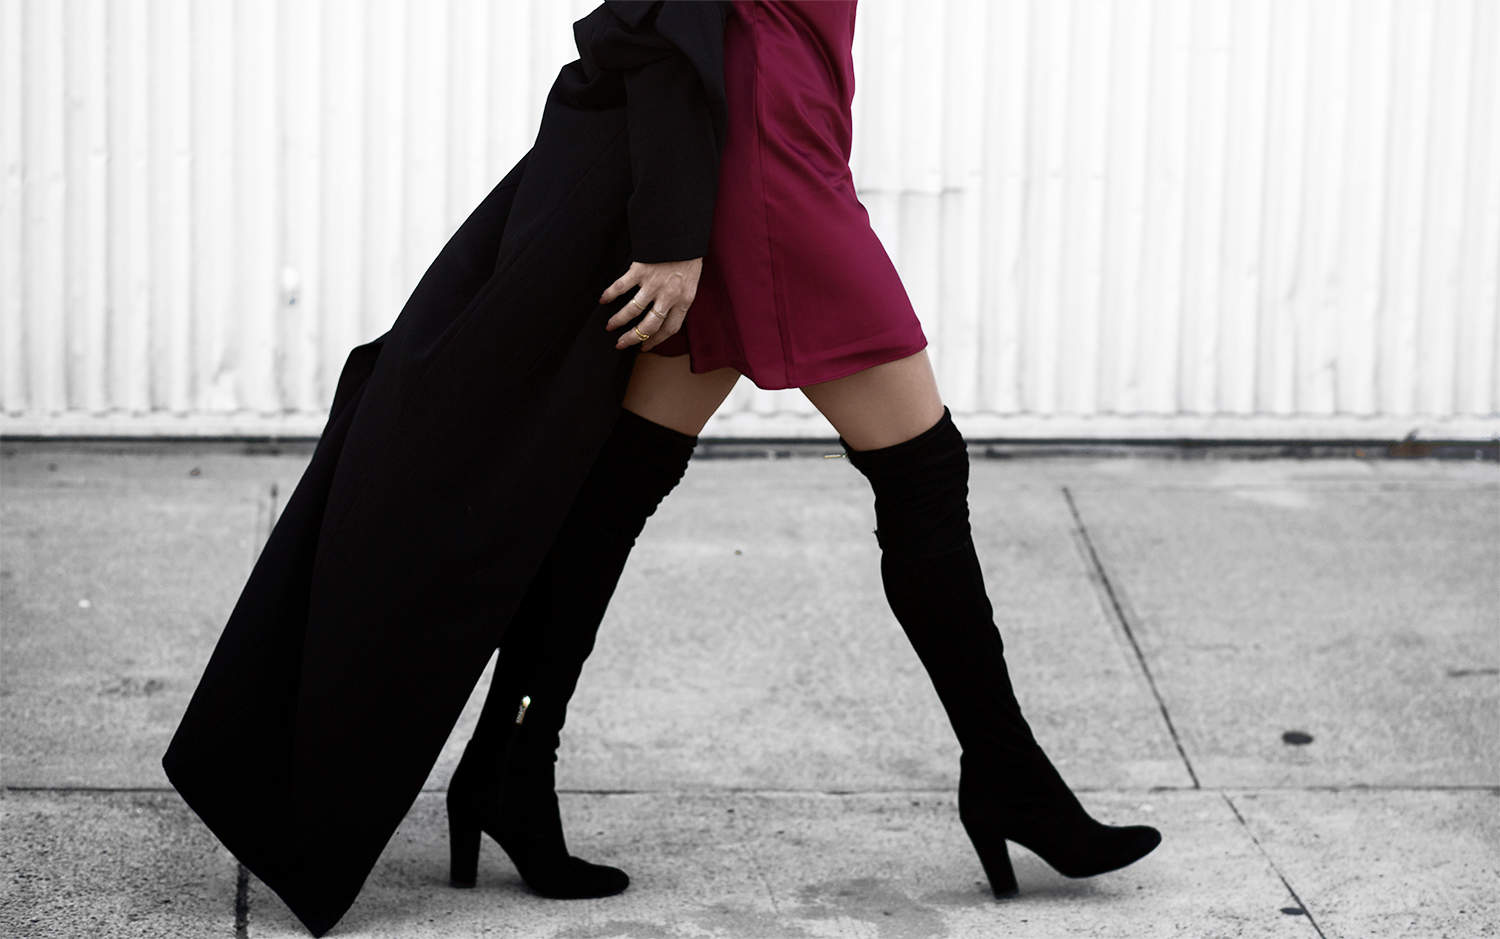 Short Skirt, Long Jacket - Fashionlush